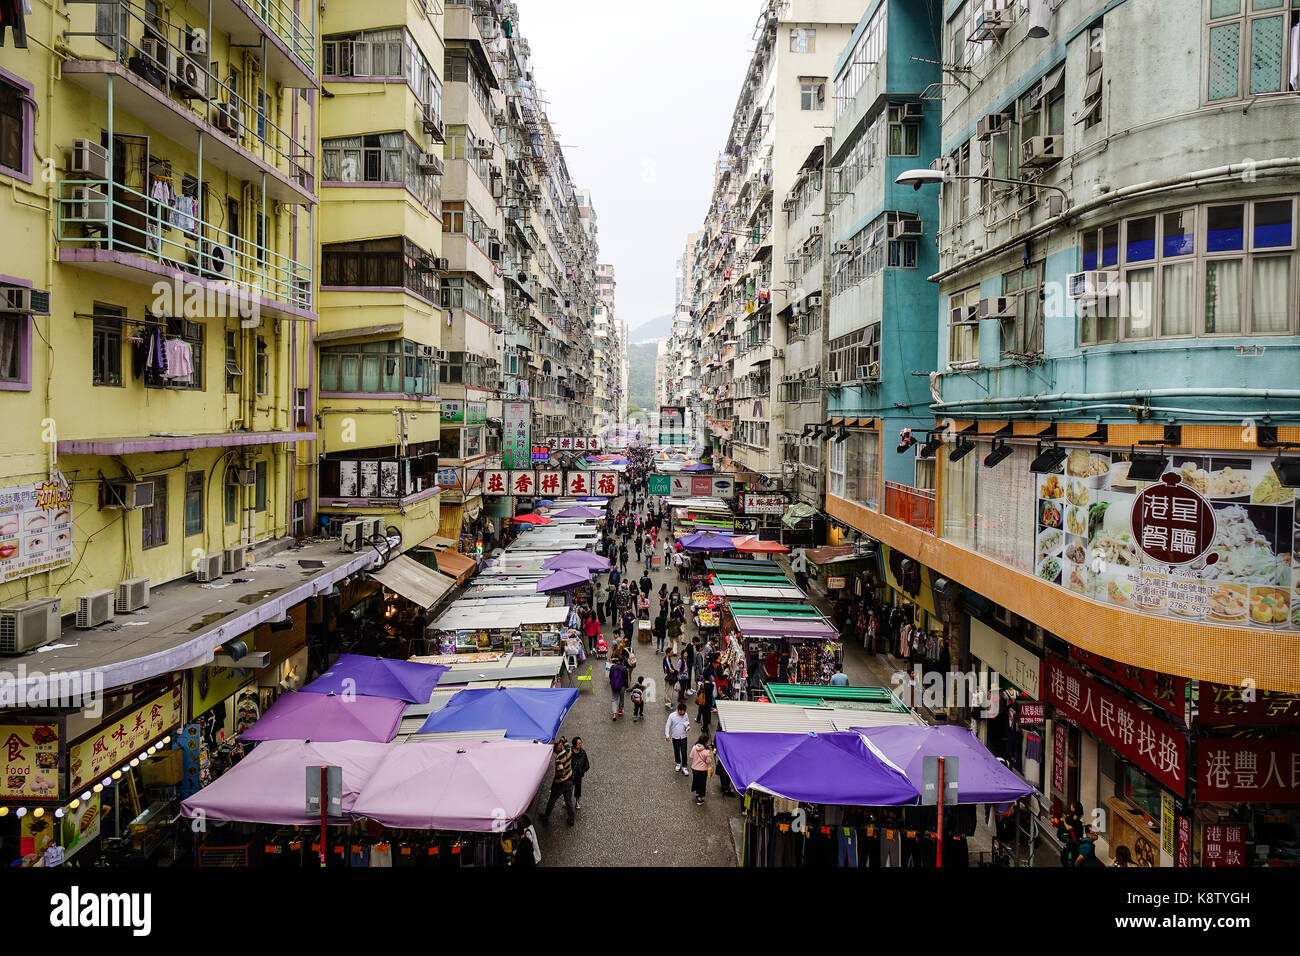 Hong Kong - Mar 29, 2017. People at Fa Yuen street market in Hong Kong. The area is popular with tourists and locals - Stock Image